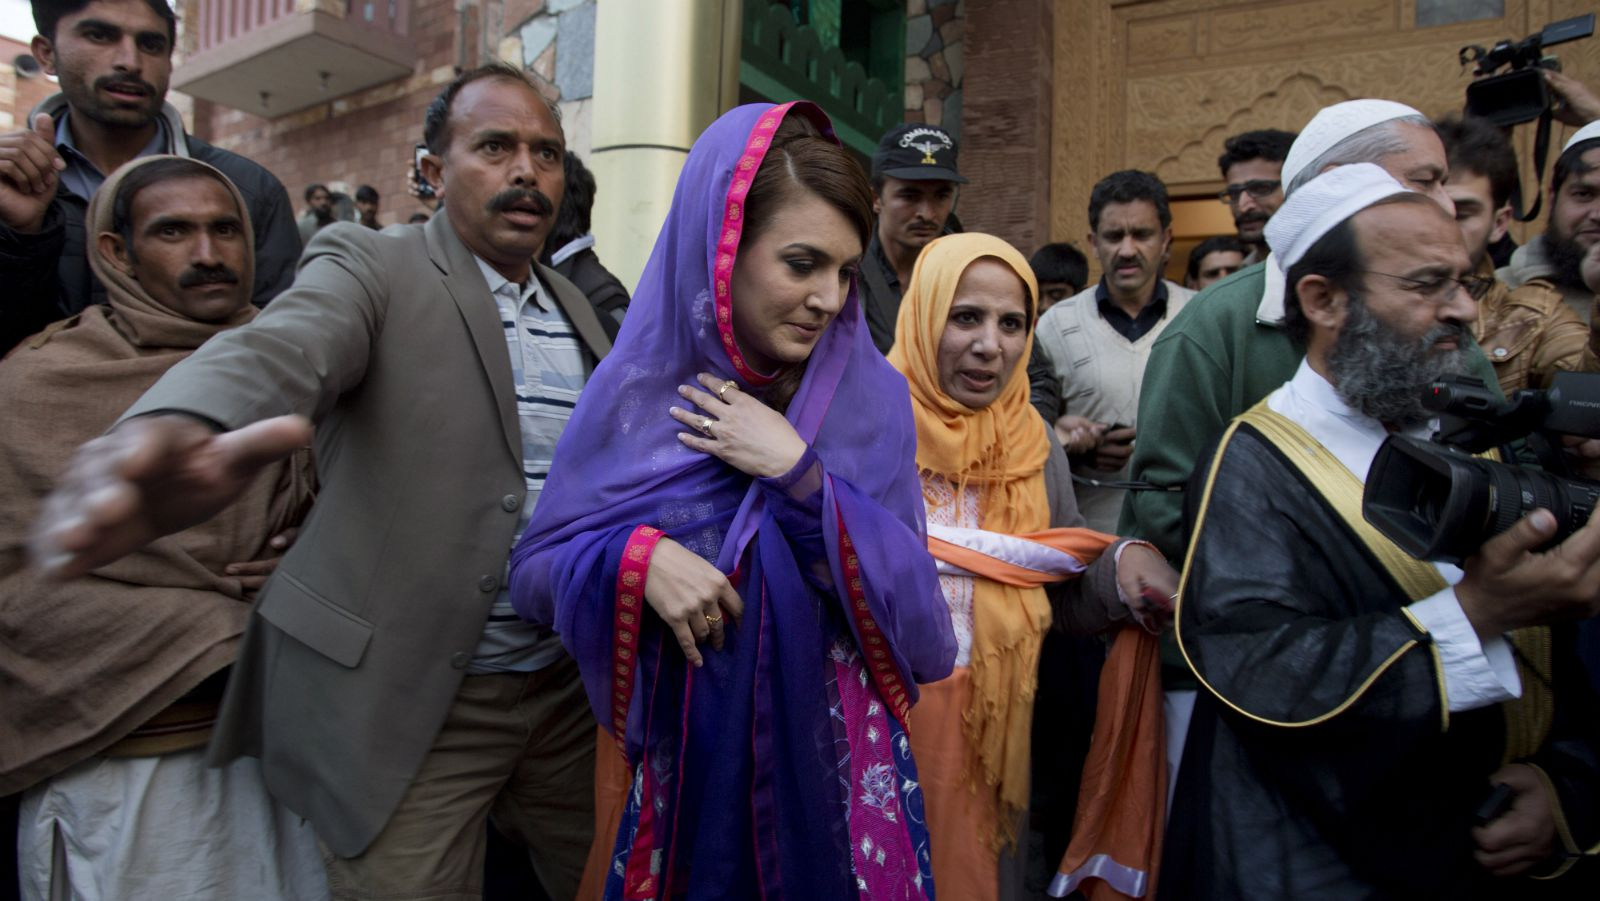 Reham Khan, center, wife of Pakistan's cricketer-turned-politician Imran Khan, leaves a local madrassa, or seminary, in Islamabad, Pakistan, Friday, Jan. 9, 2015. Imran, Pakistan's legendary cricket star and politician, tied the knot with Reham, a former journalist, Thursday, ending weeks of speculation about whether one of the country's most famous bachelors was getting married for a second time.